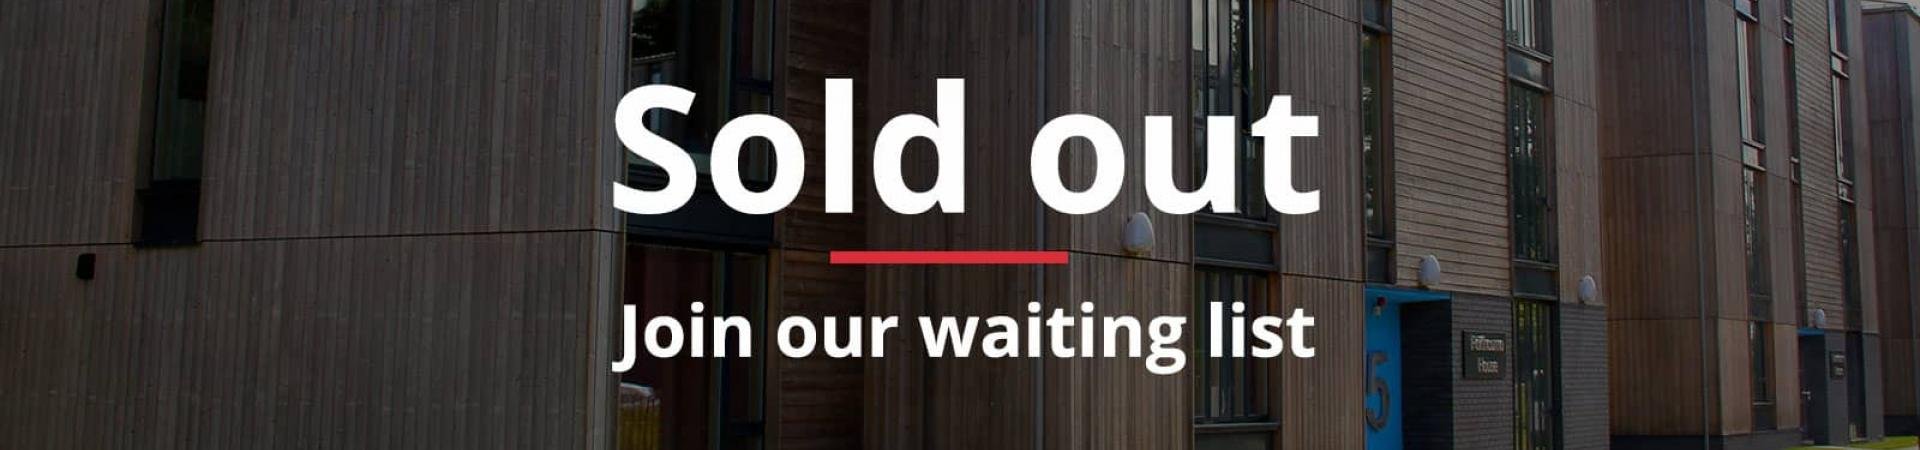 Treliske is sold out but you can still join our waiting list